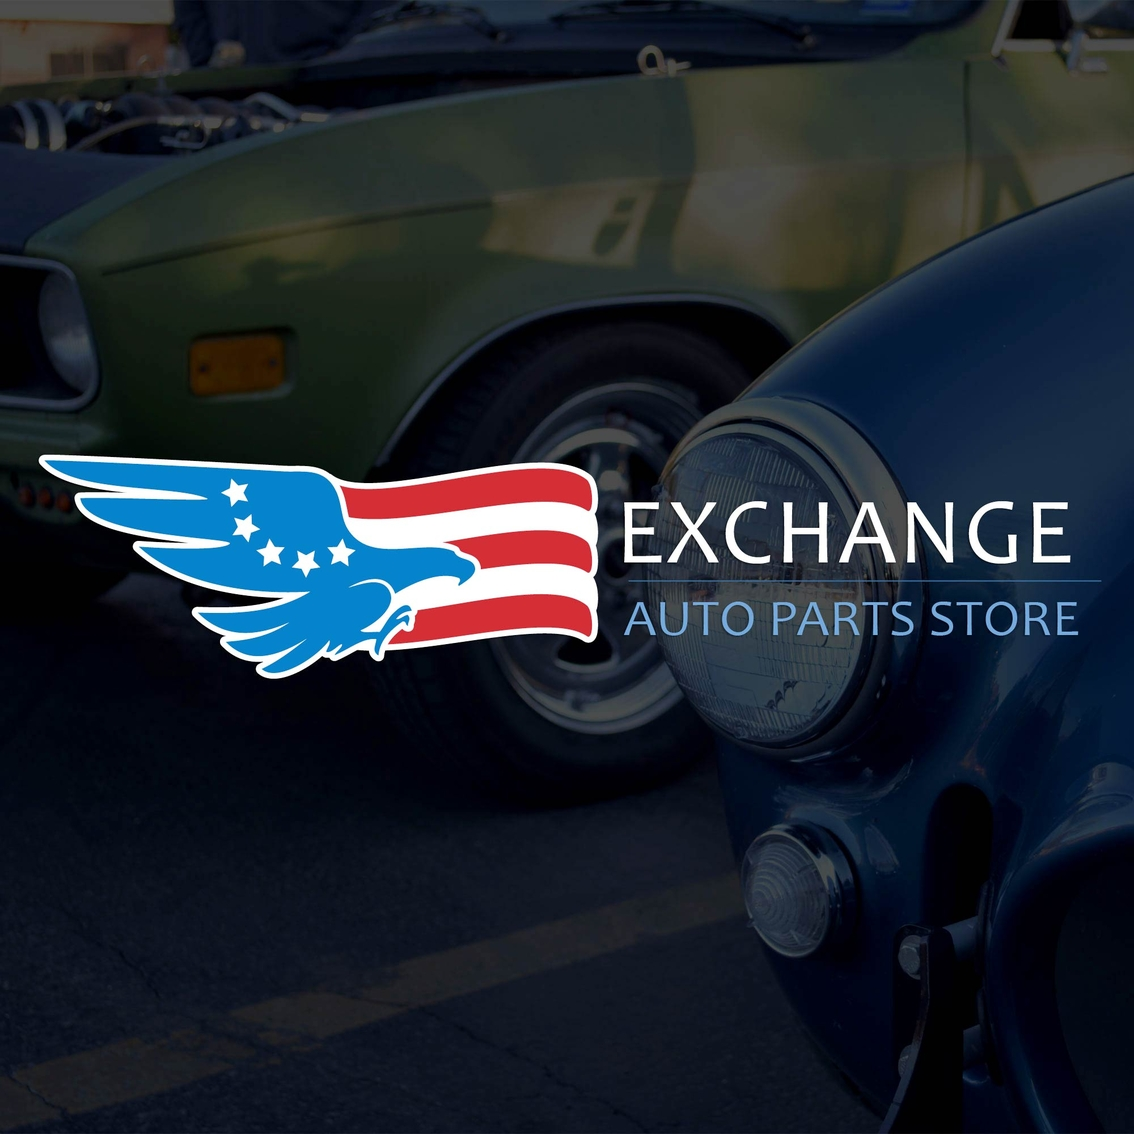 Exchange Auto Parts Store | Specialty Stores | More | Shop The Exchange